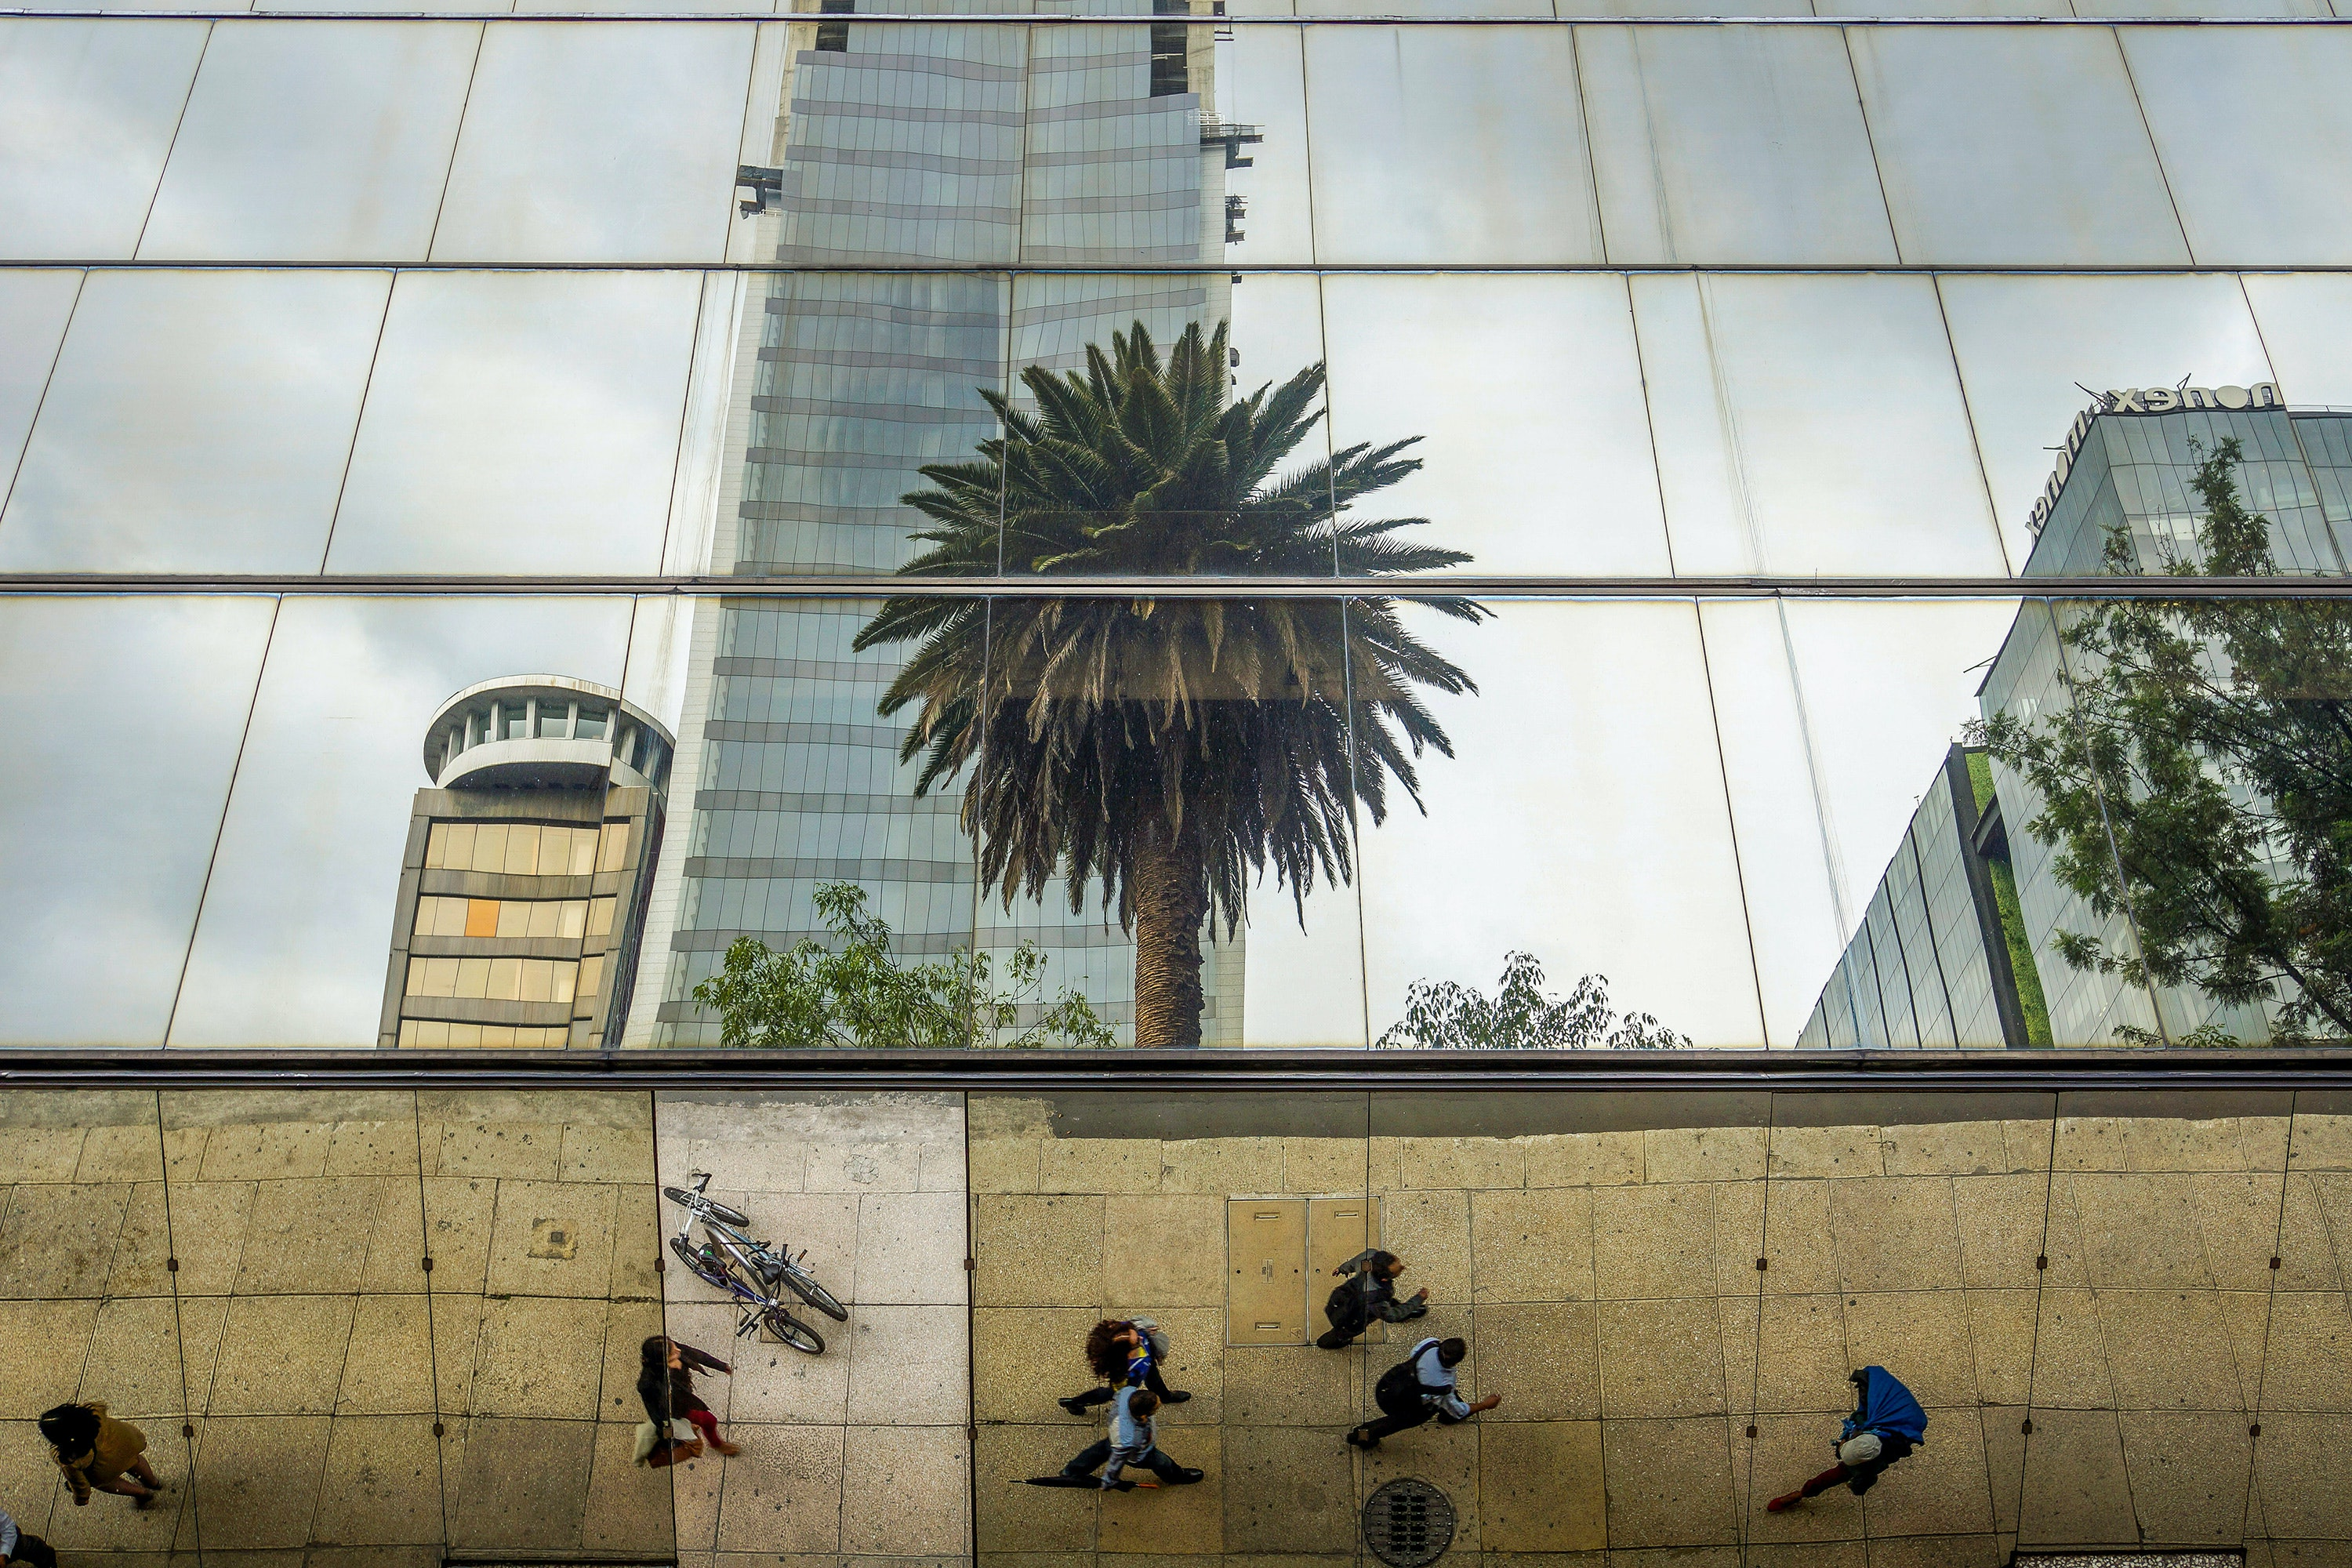 People on the sidewalk next to mirrored buildings in downtown Mexico City.